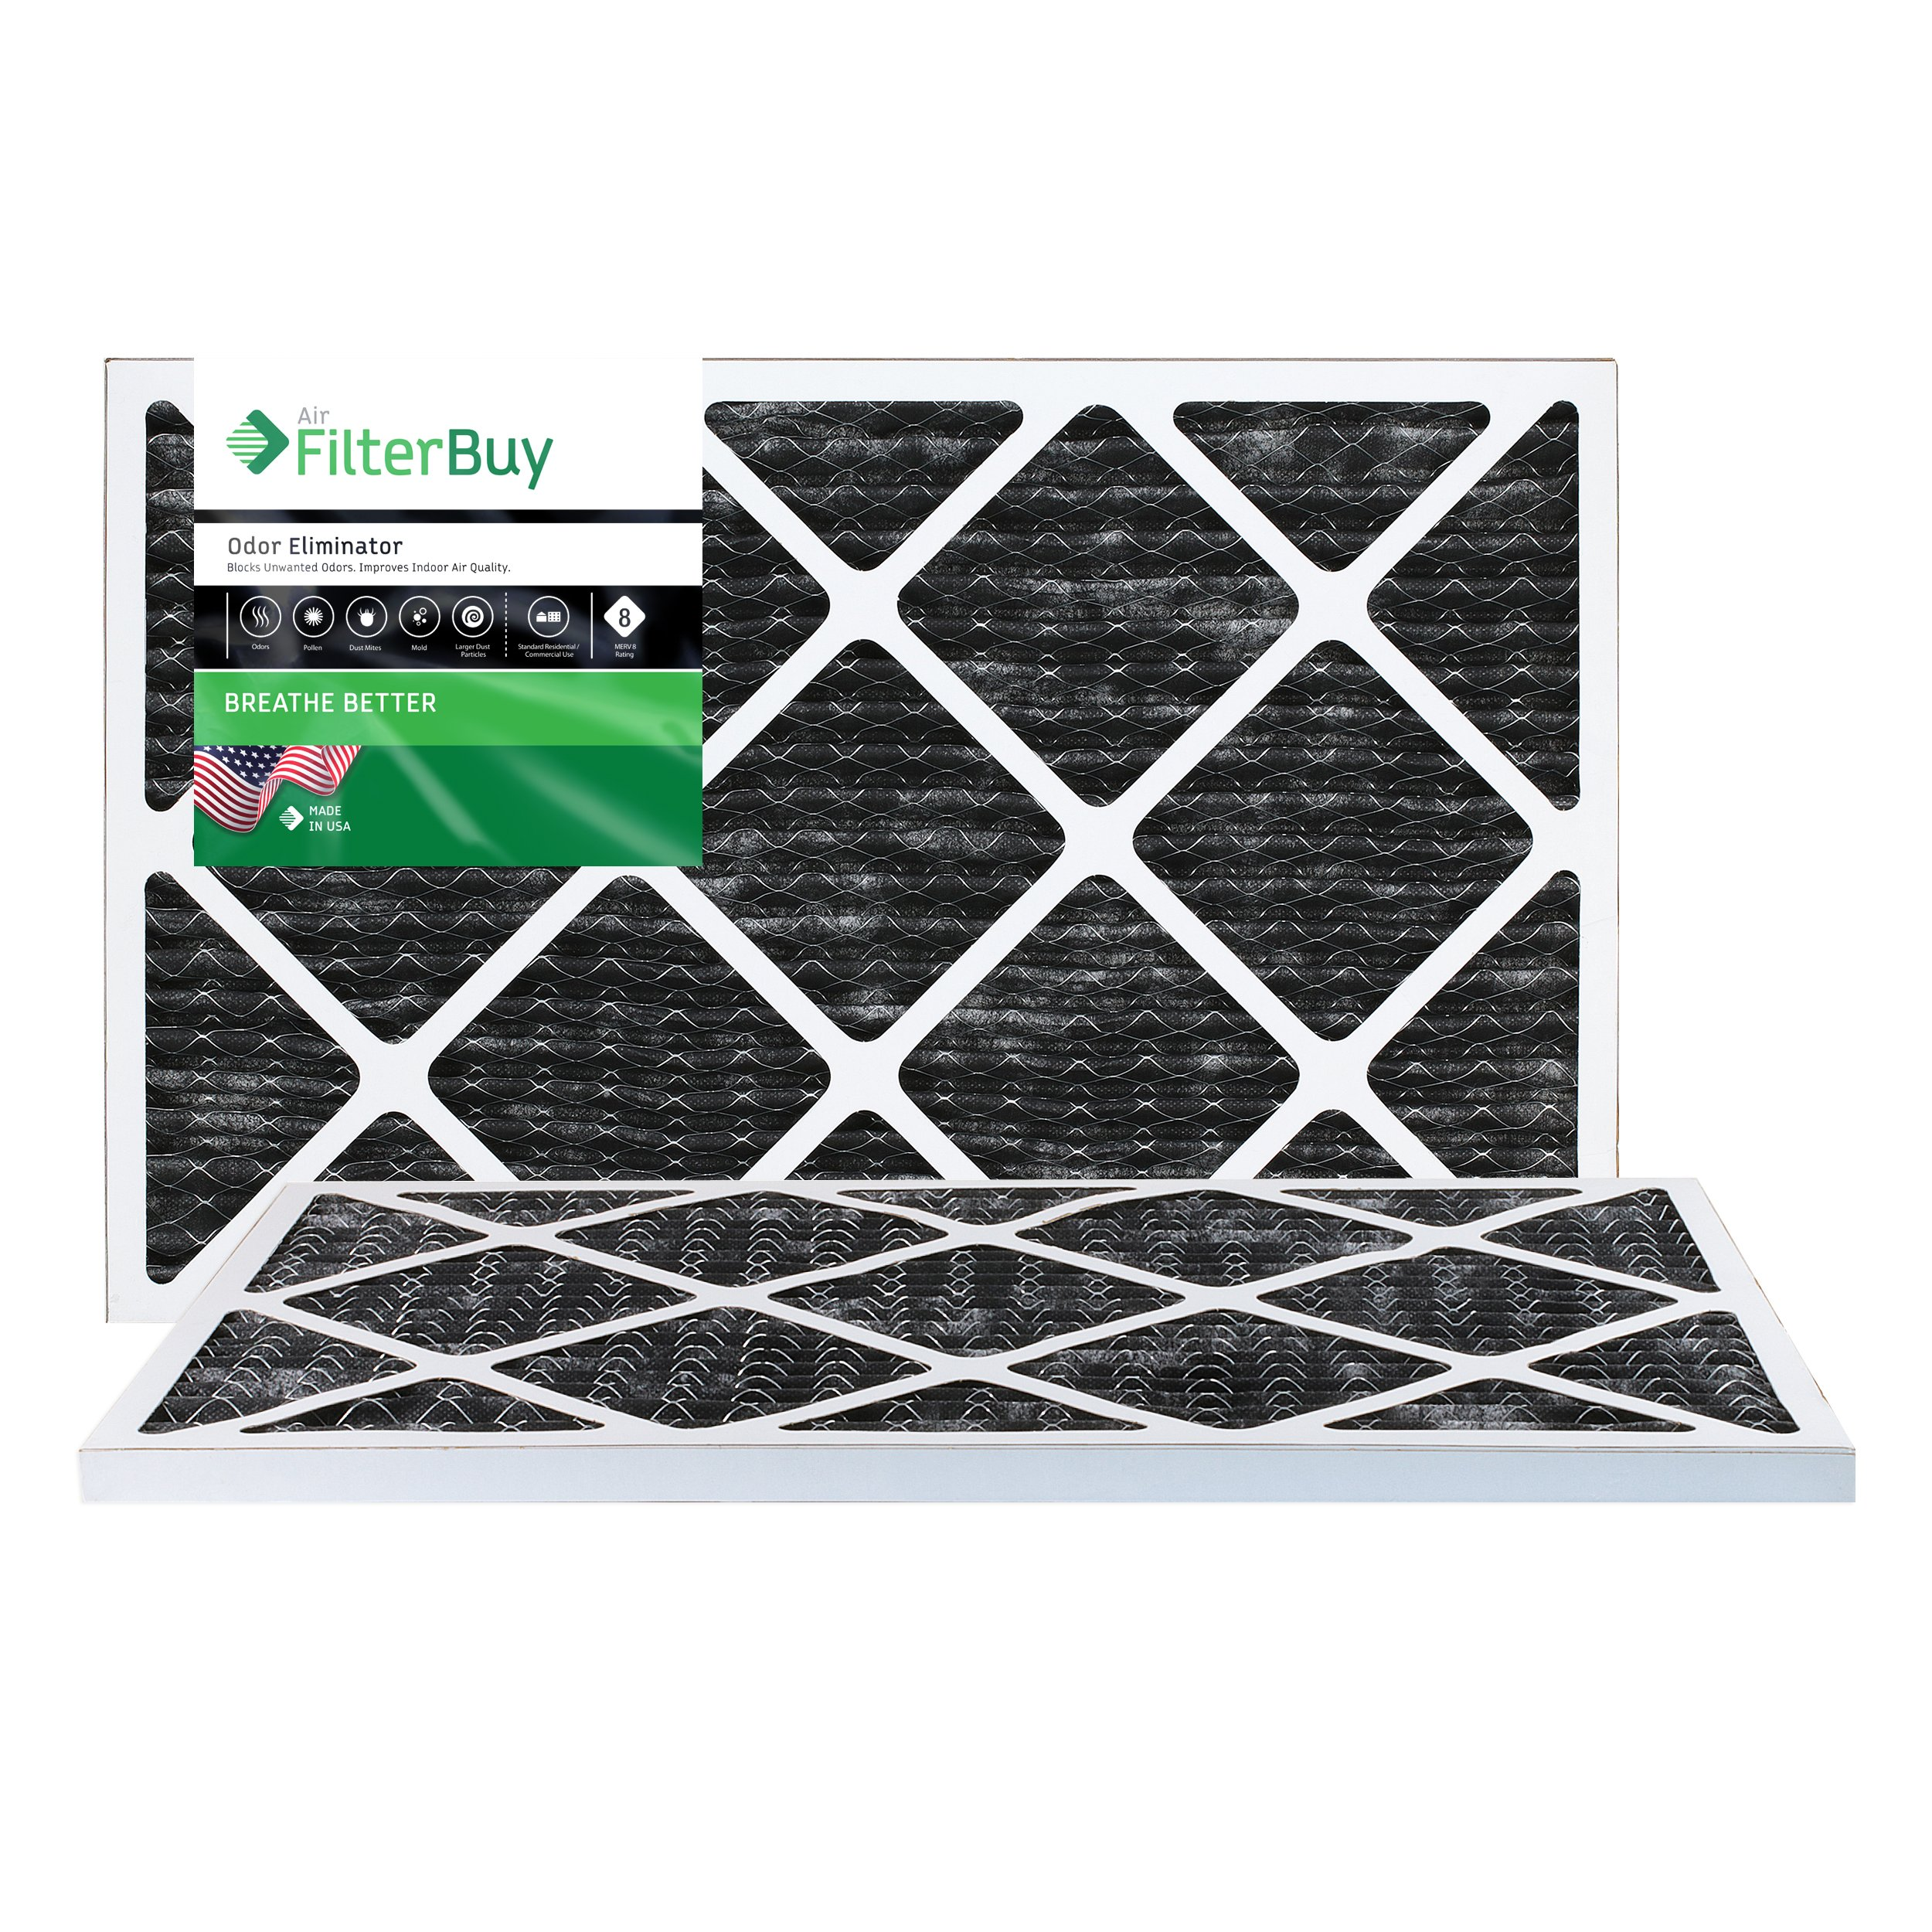 FilterBuy Allergen Odor Eliminator 16x24x1 MERV 8 Pleated AC Furnace Air Filter with Activated Carbon - Pack of 2-16x24x1